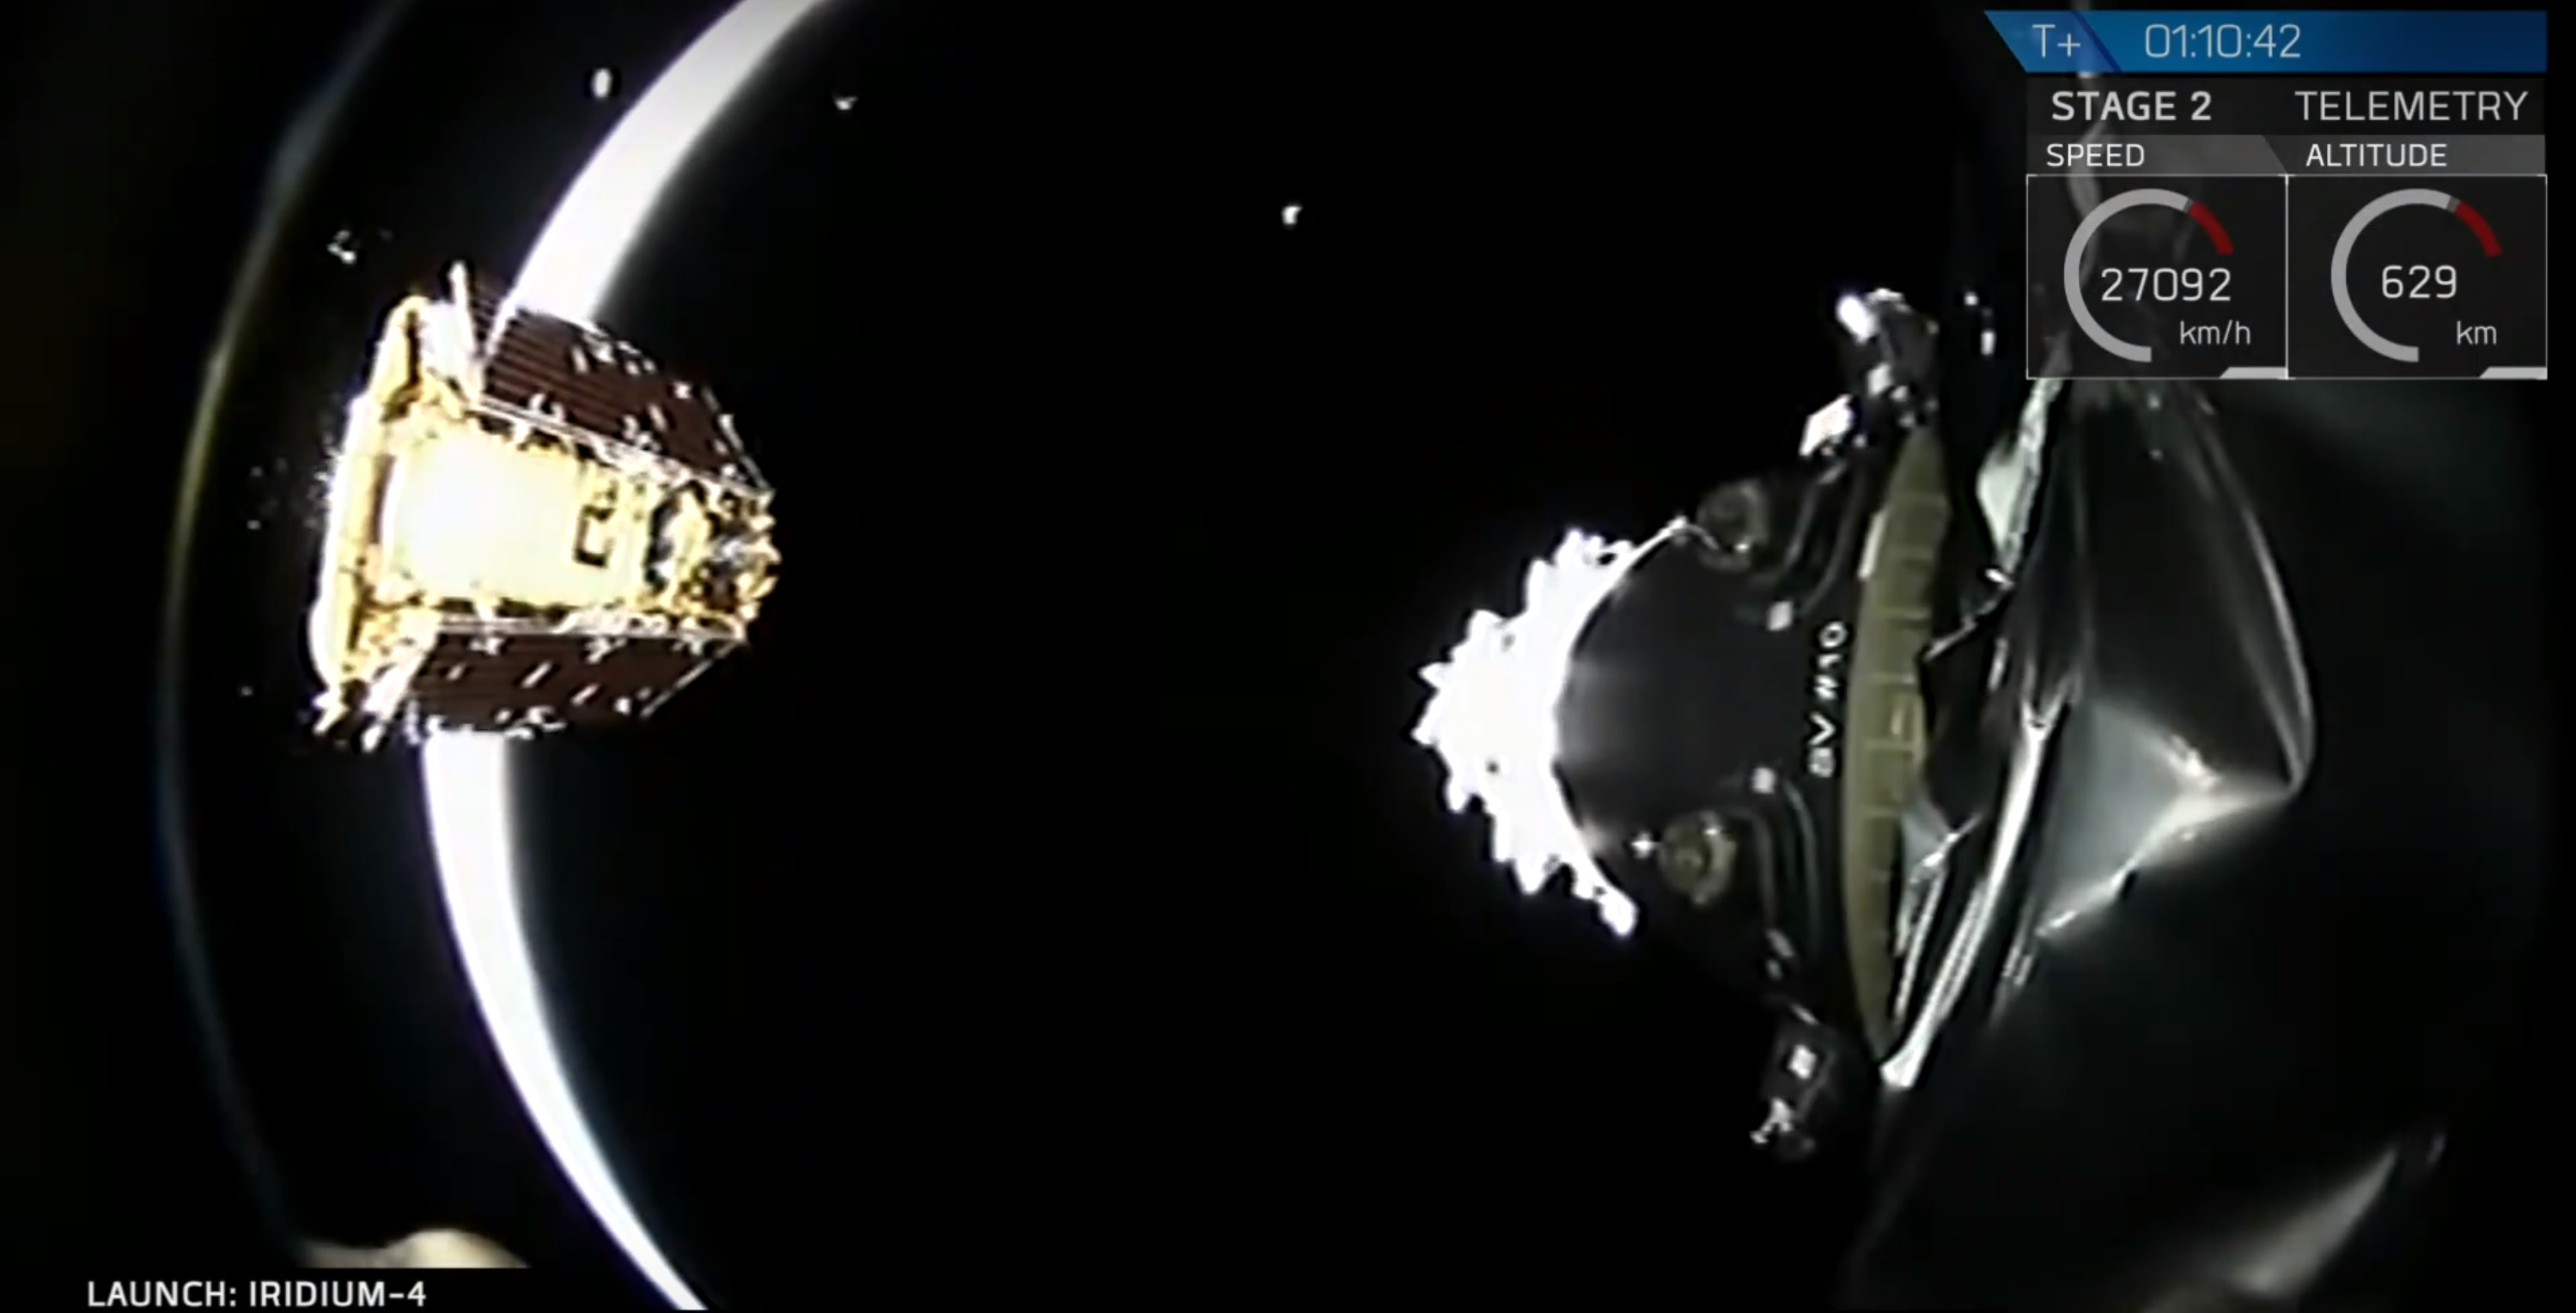 Iridium4 deployment eclipse (SpaceX)